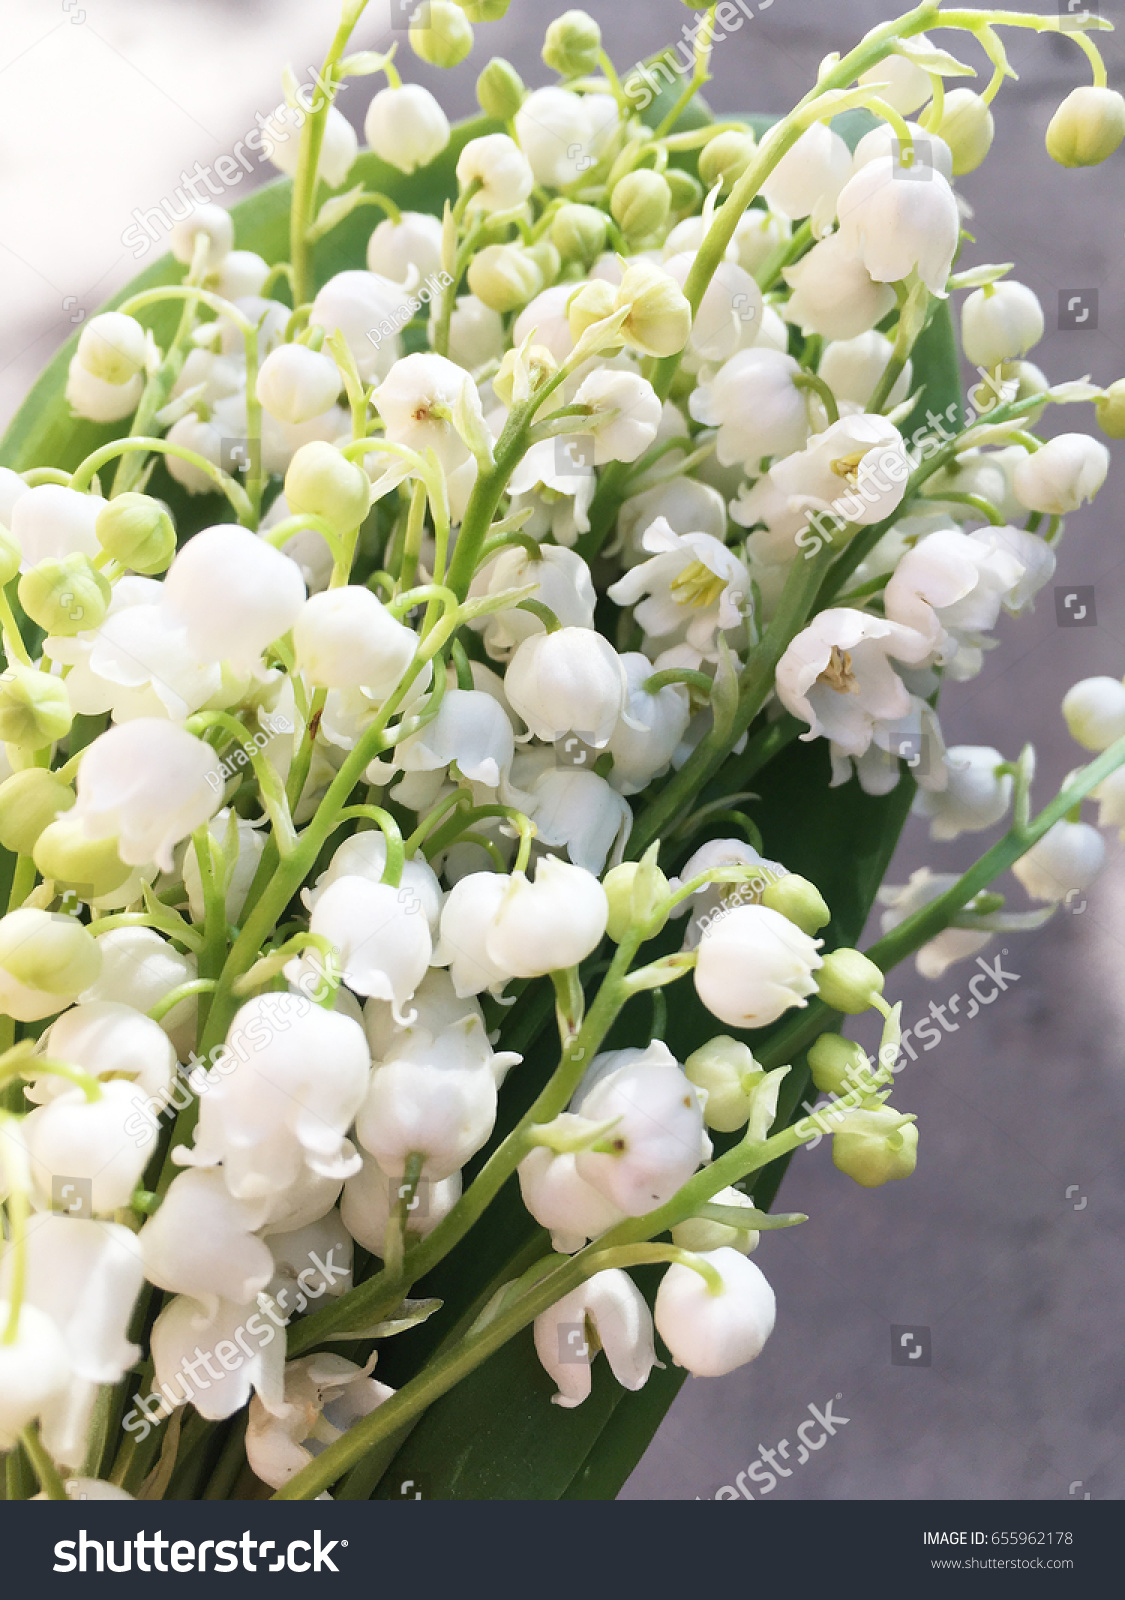 Lily valleys small white flower bells stock photo edit now lily of the valleys small white flower bells many lilies izmirmasajfo